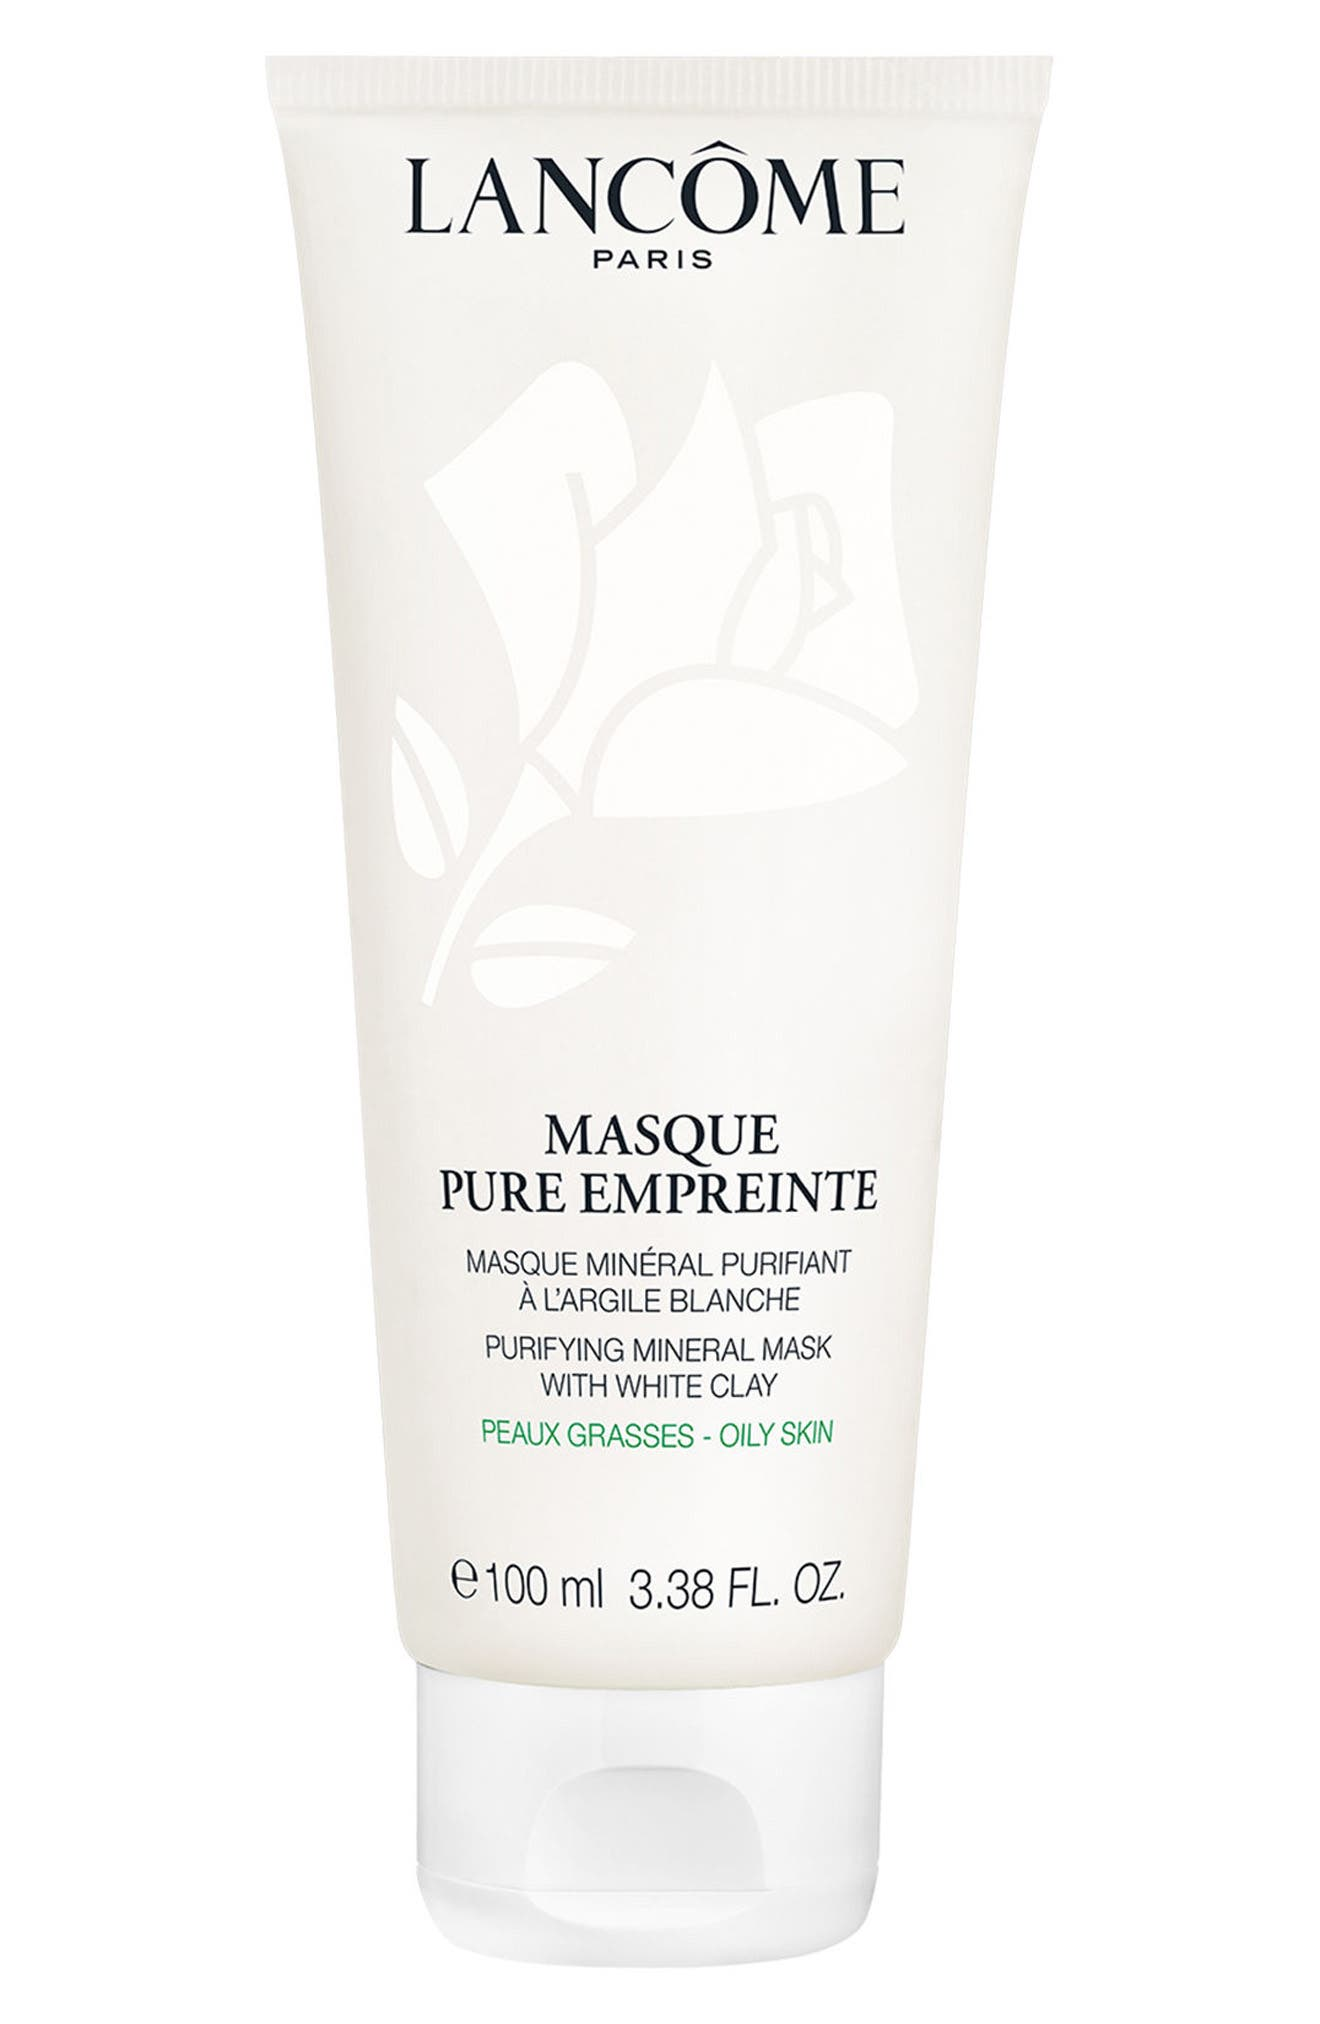 Alternate Image 1 Selected - Lancôme 'Pure Empreinte Masque' Purifying Mineral Mask